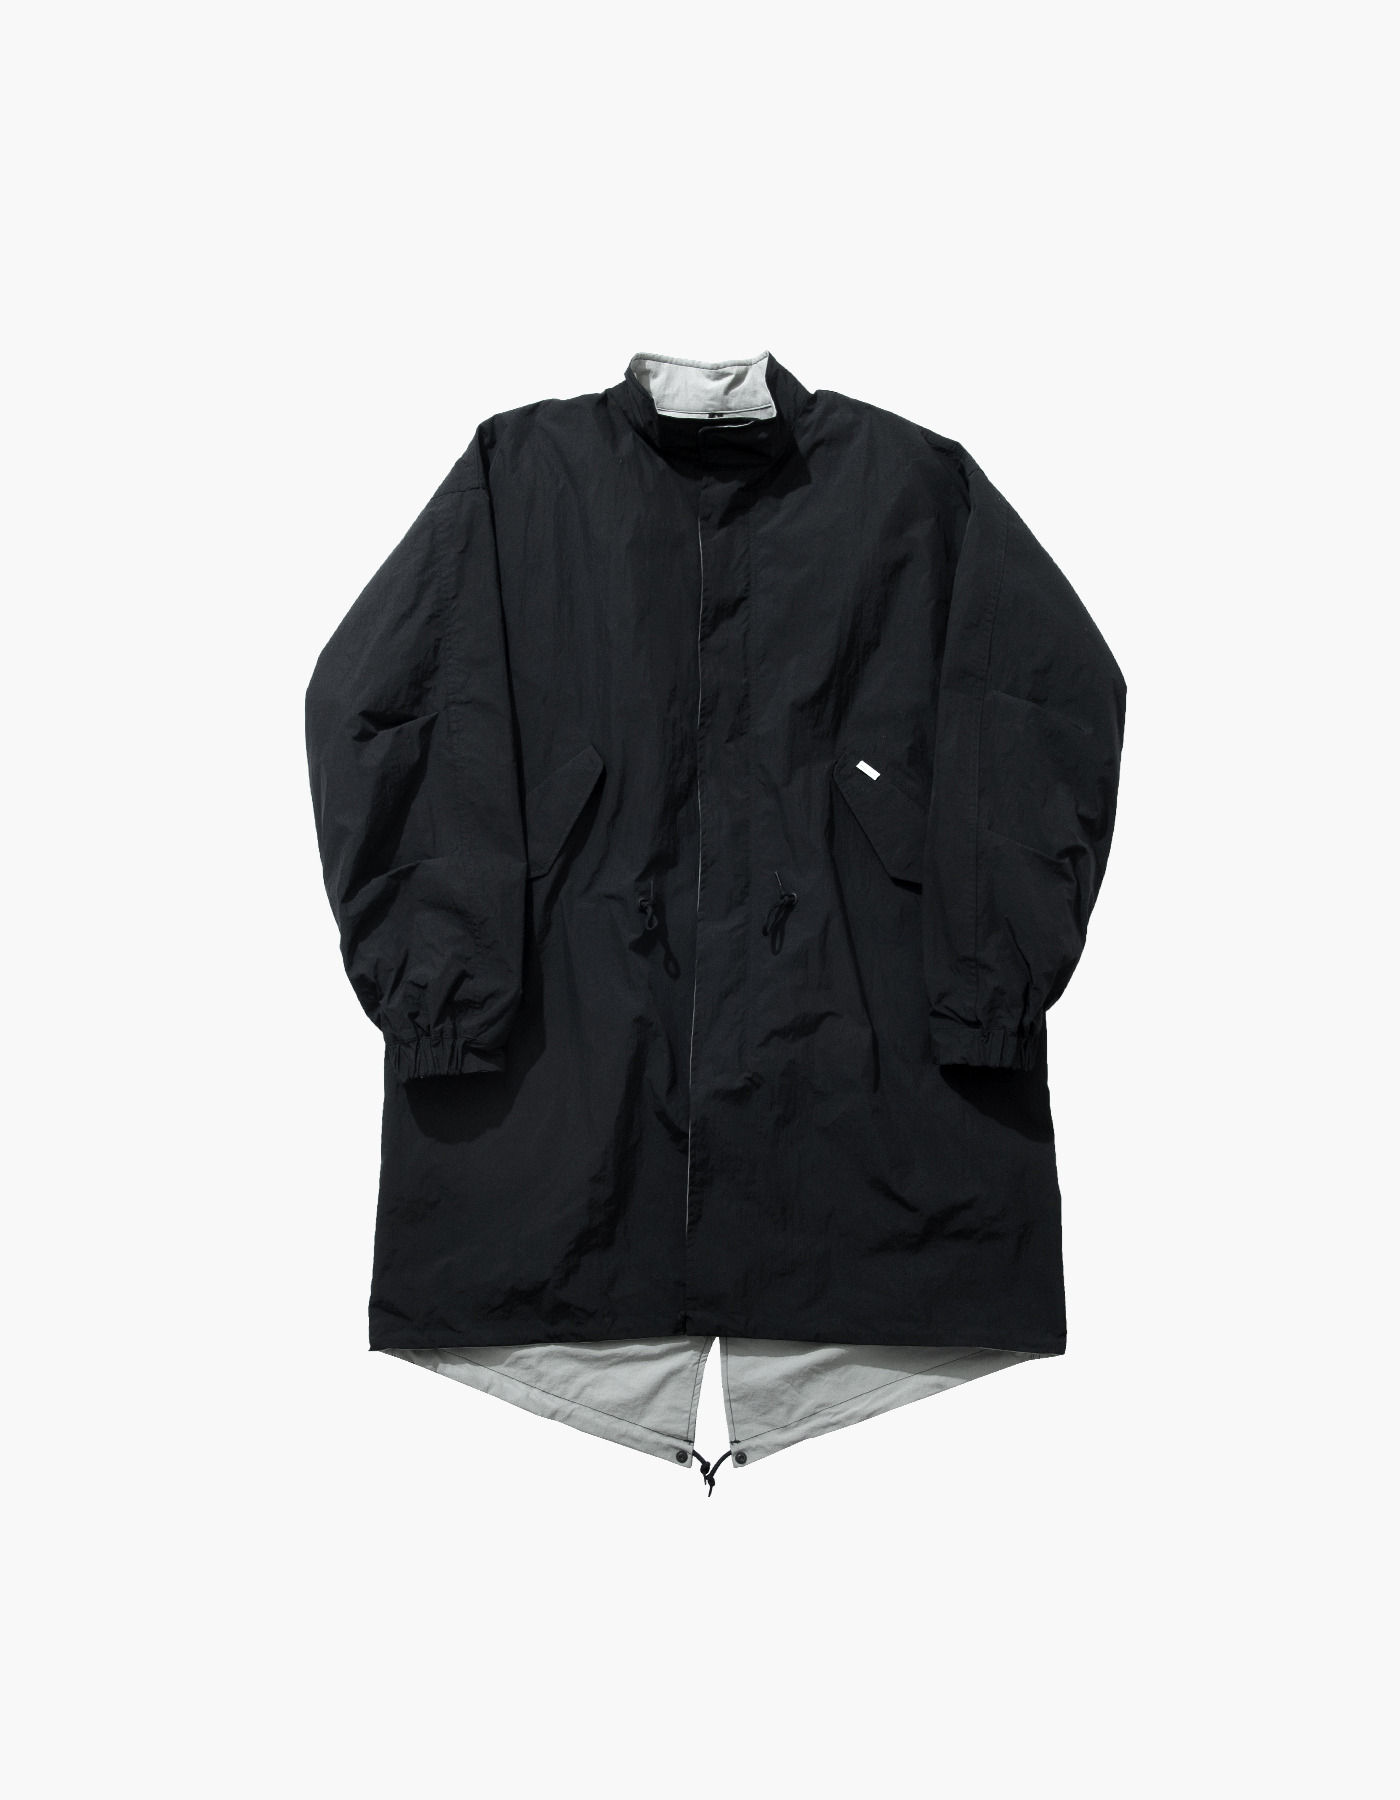 SALT NYLON REVERSIBLE FISHTAIL / BLACK